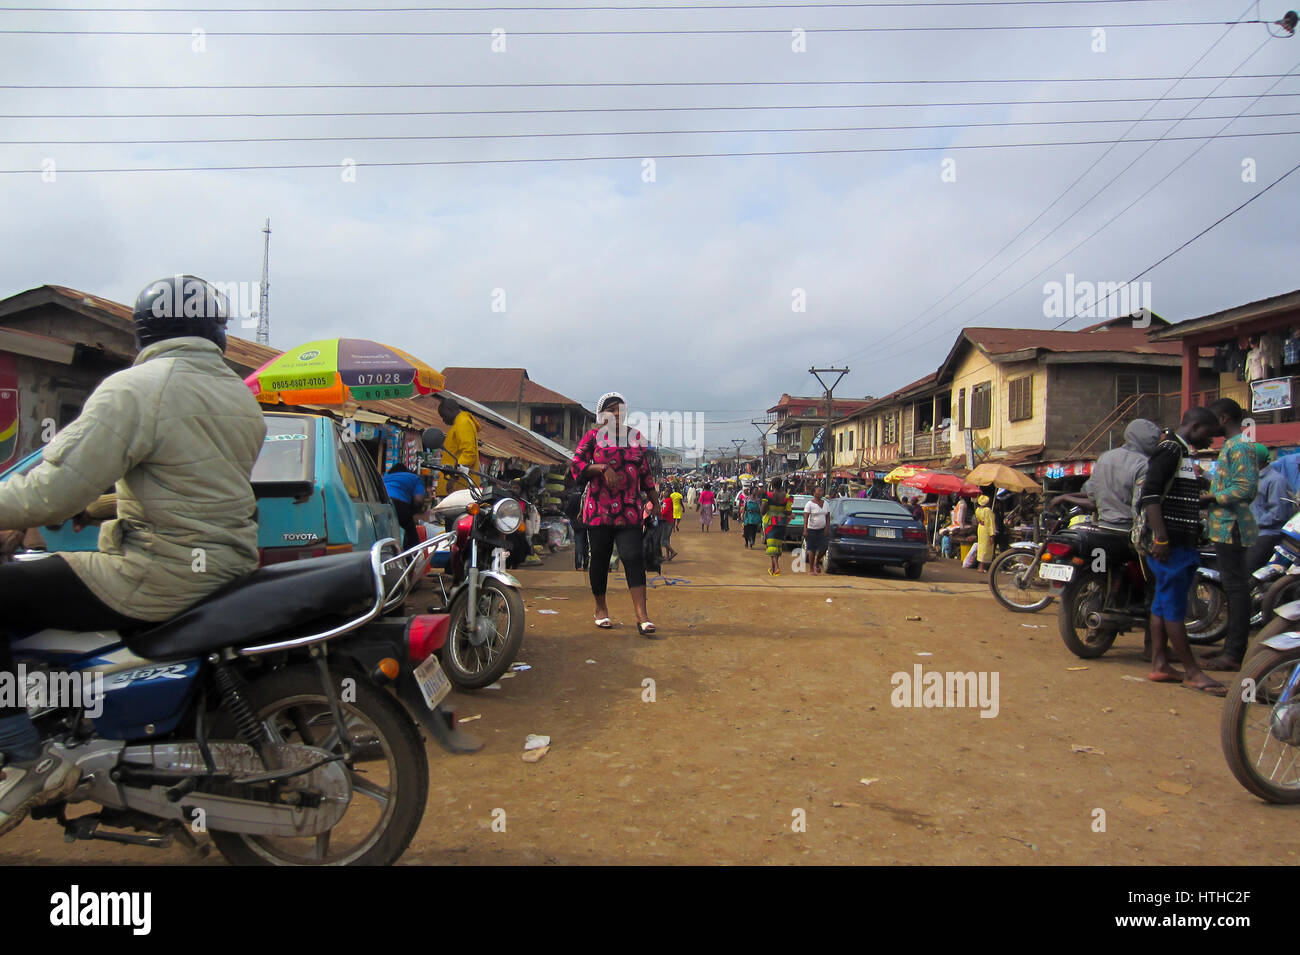 People trading in the street in the city of Lagos, the largest city in Nigeria and the African continent. Lagos - Stock Image